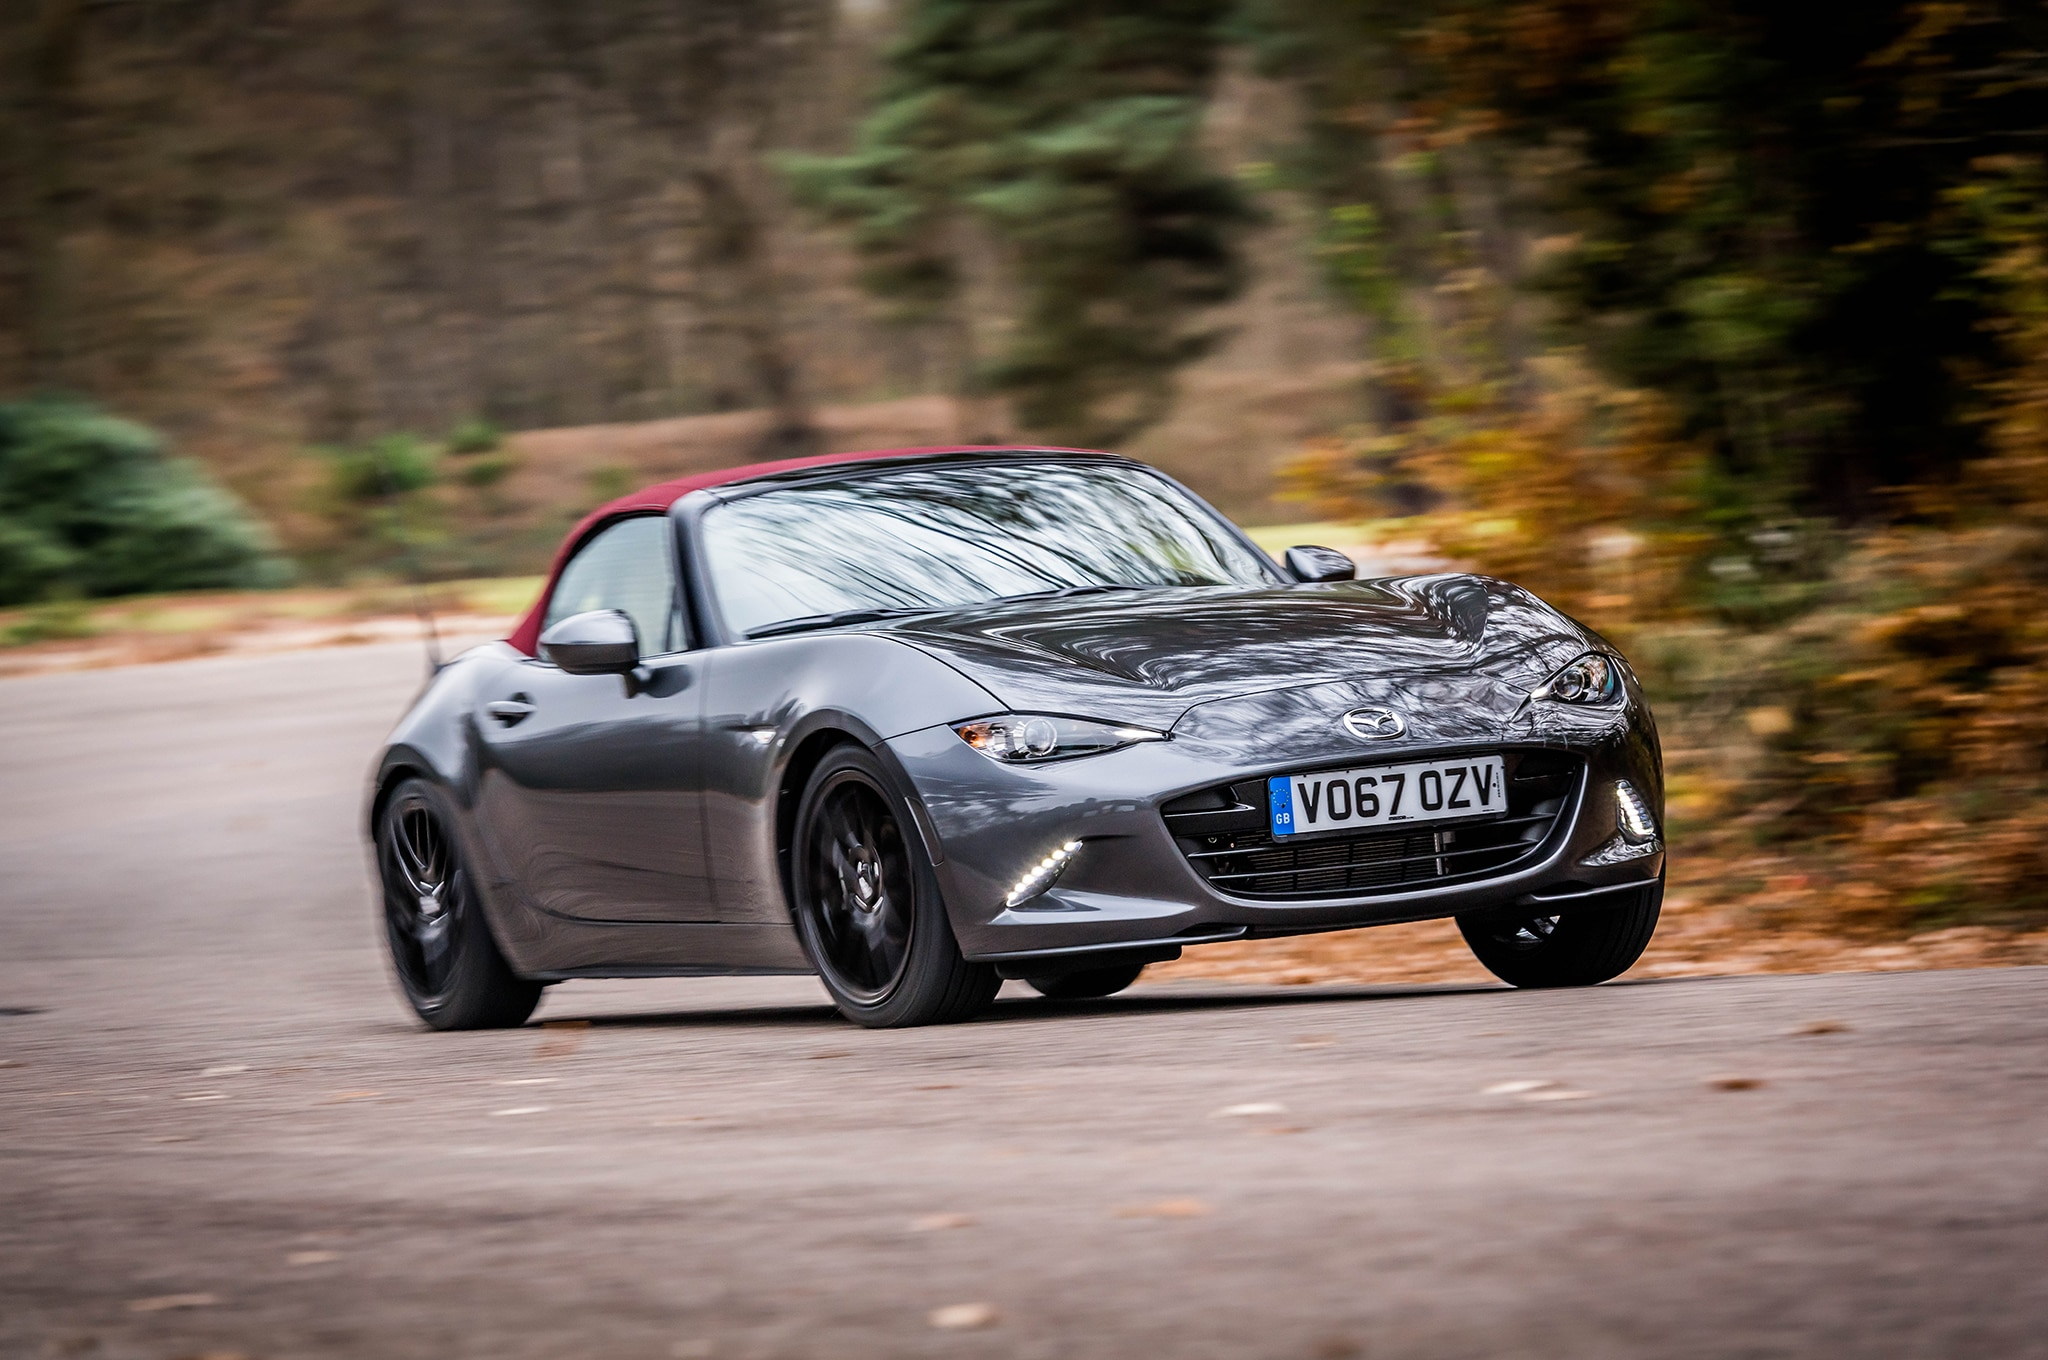 2018 Mazda MX 5 Miata Z Sport Front Three Quarter In Motion 01